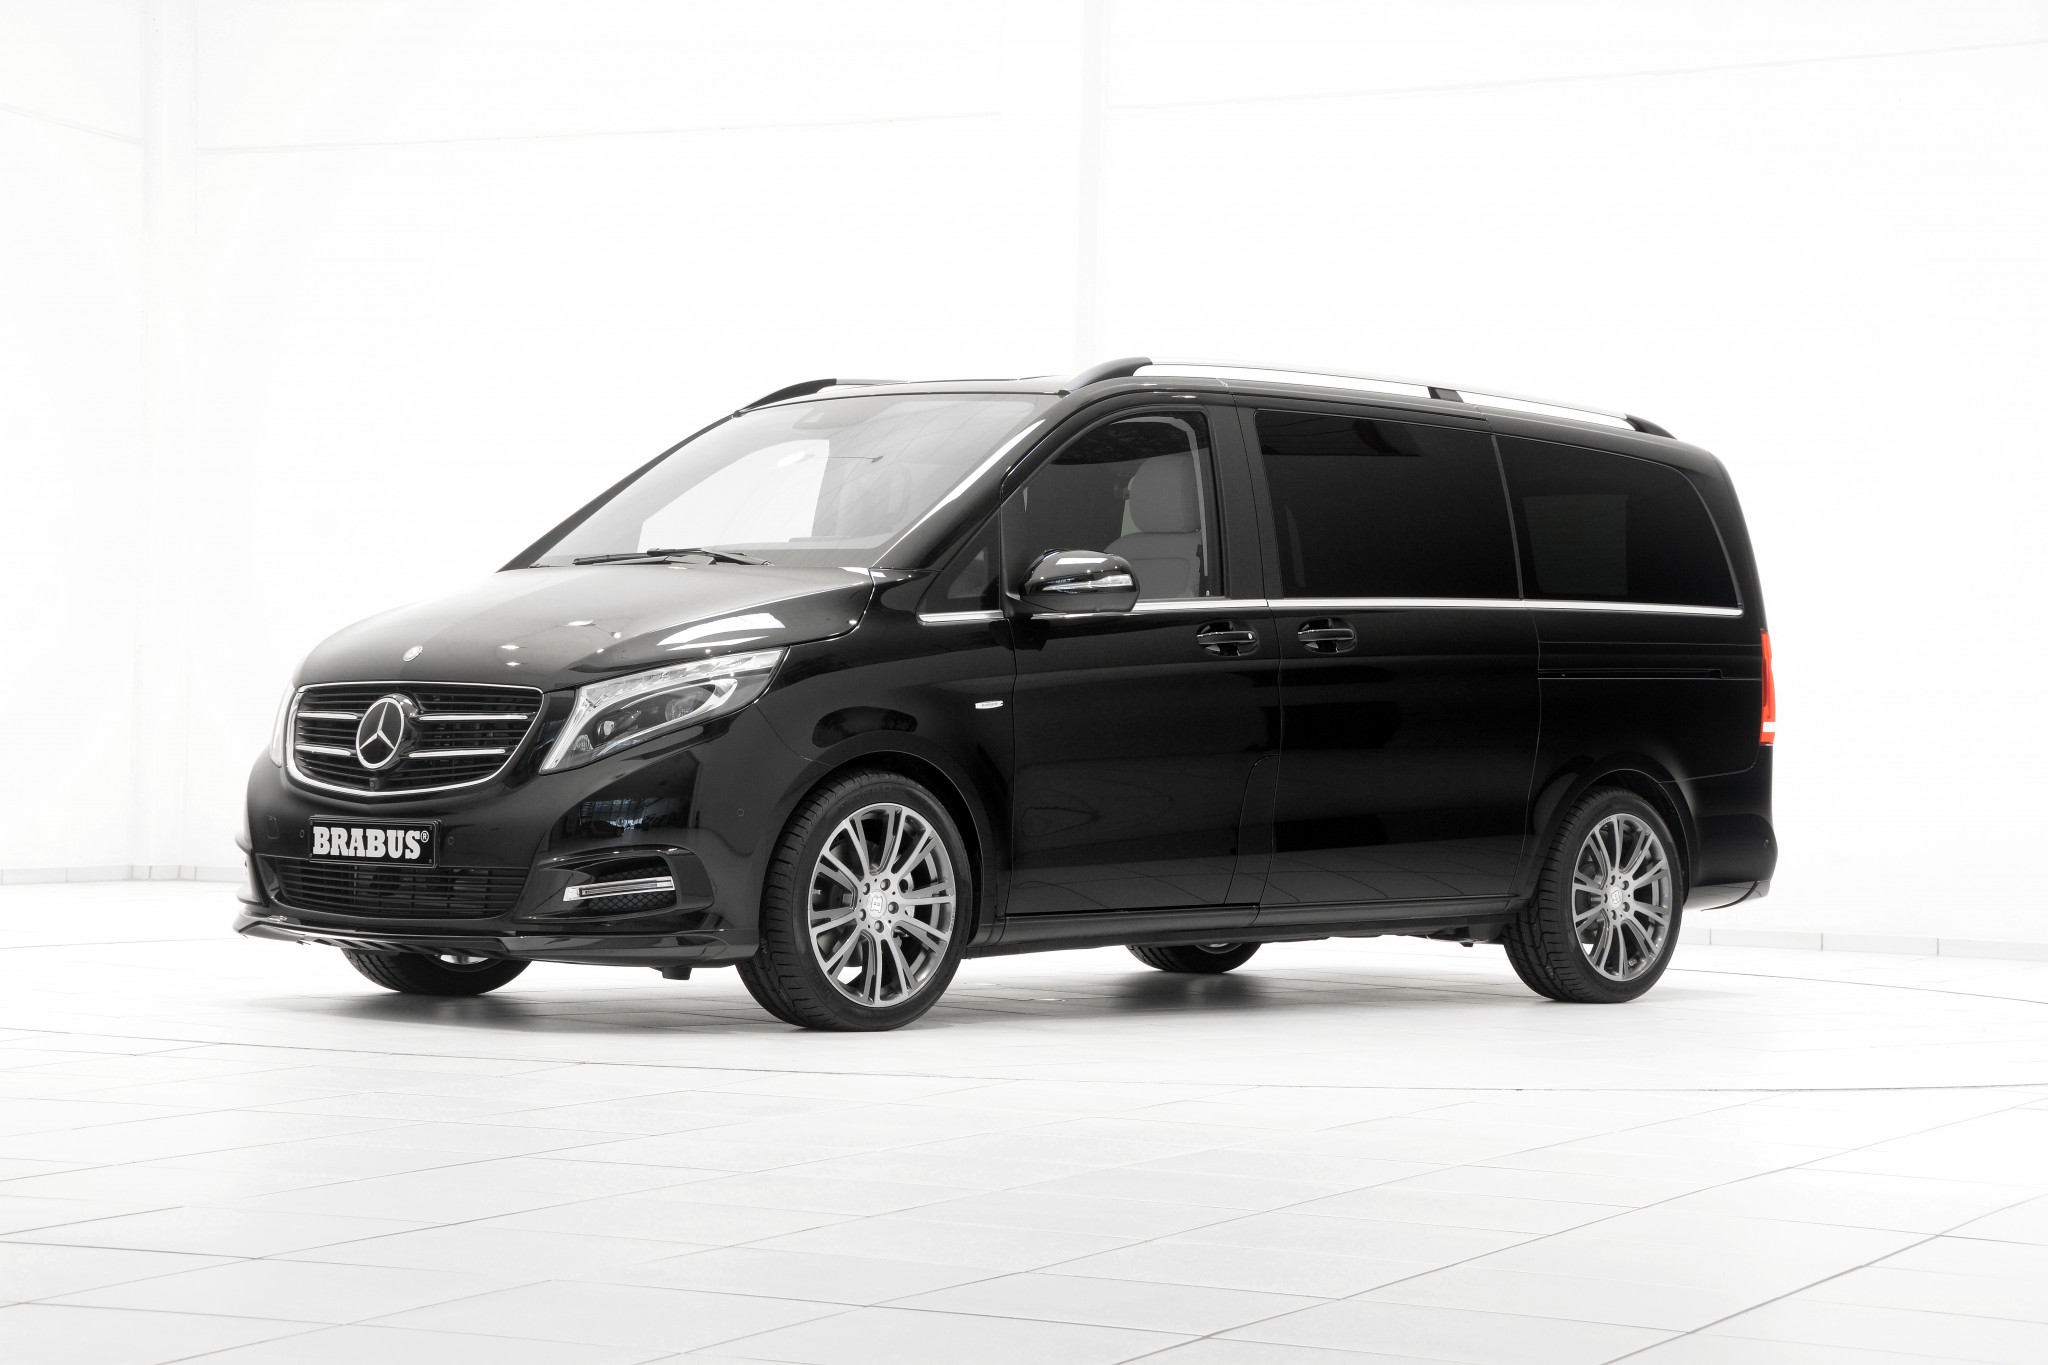 brabus tunes 2015 mercedes benz v class practical motoring. Black Bedroom Furniture Sets. Home Design Ideas